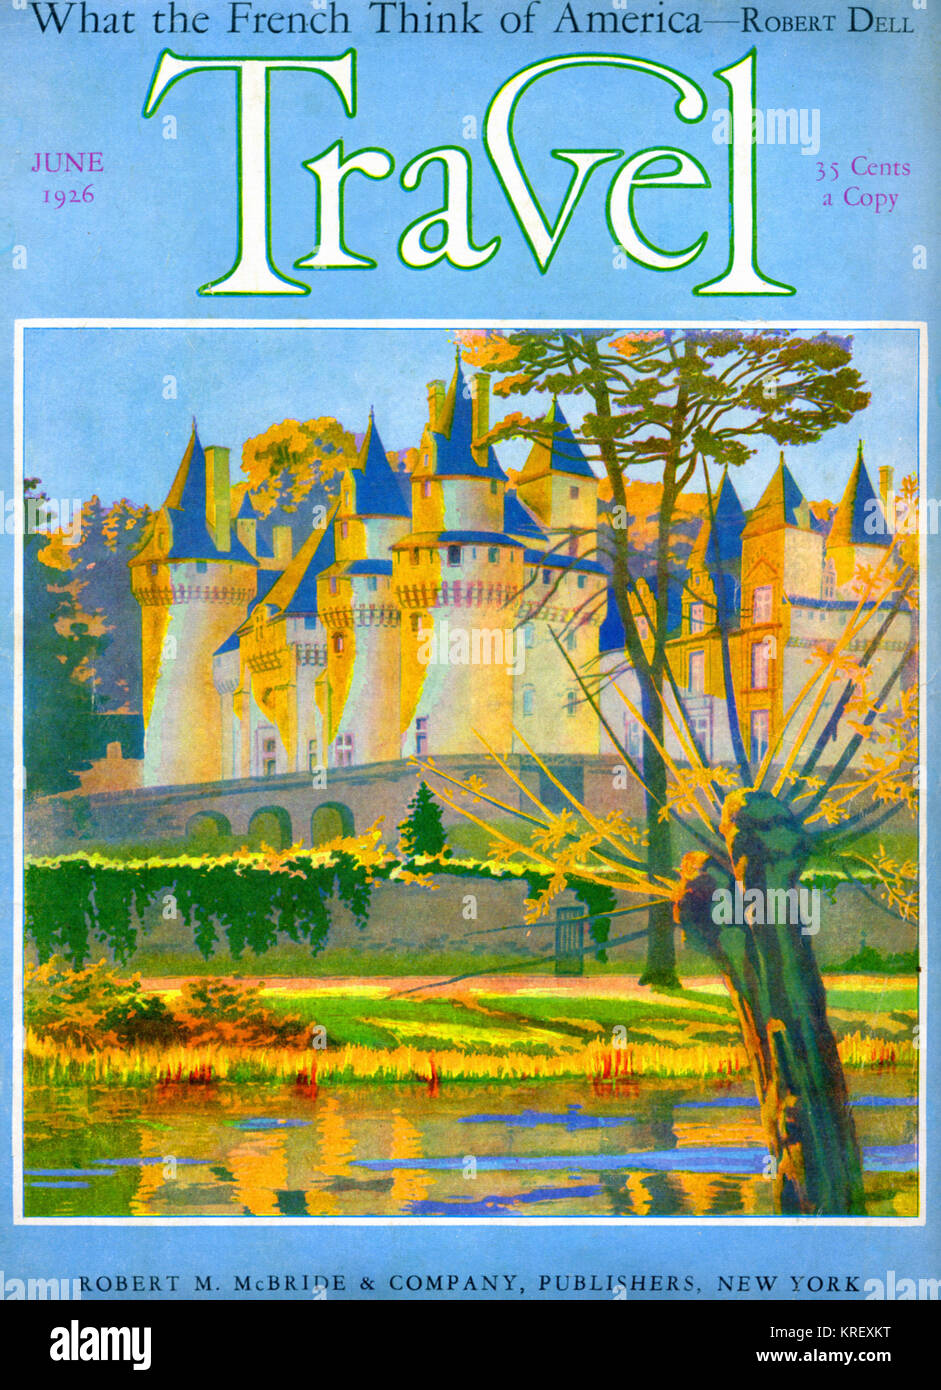 Pravel Magazine Cover French Chateau - Stock Image